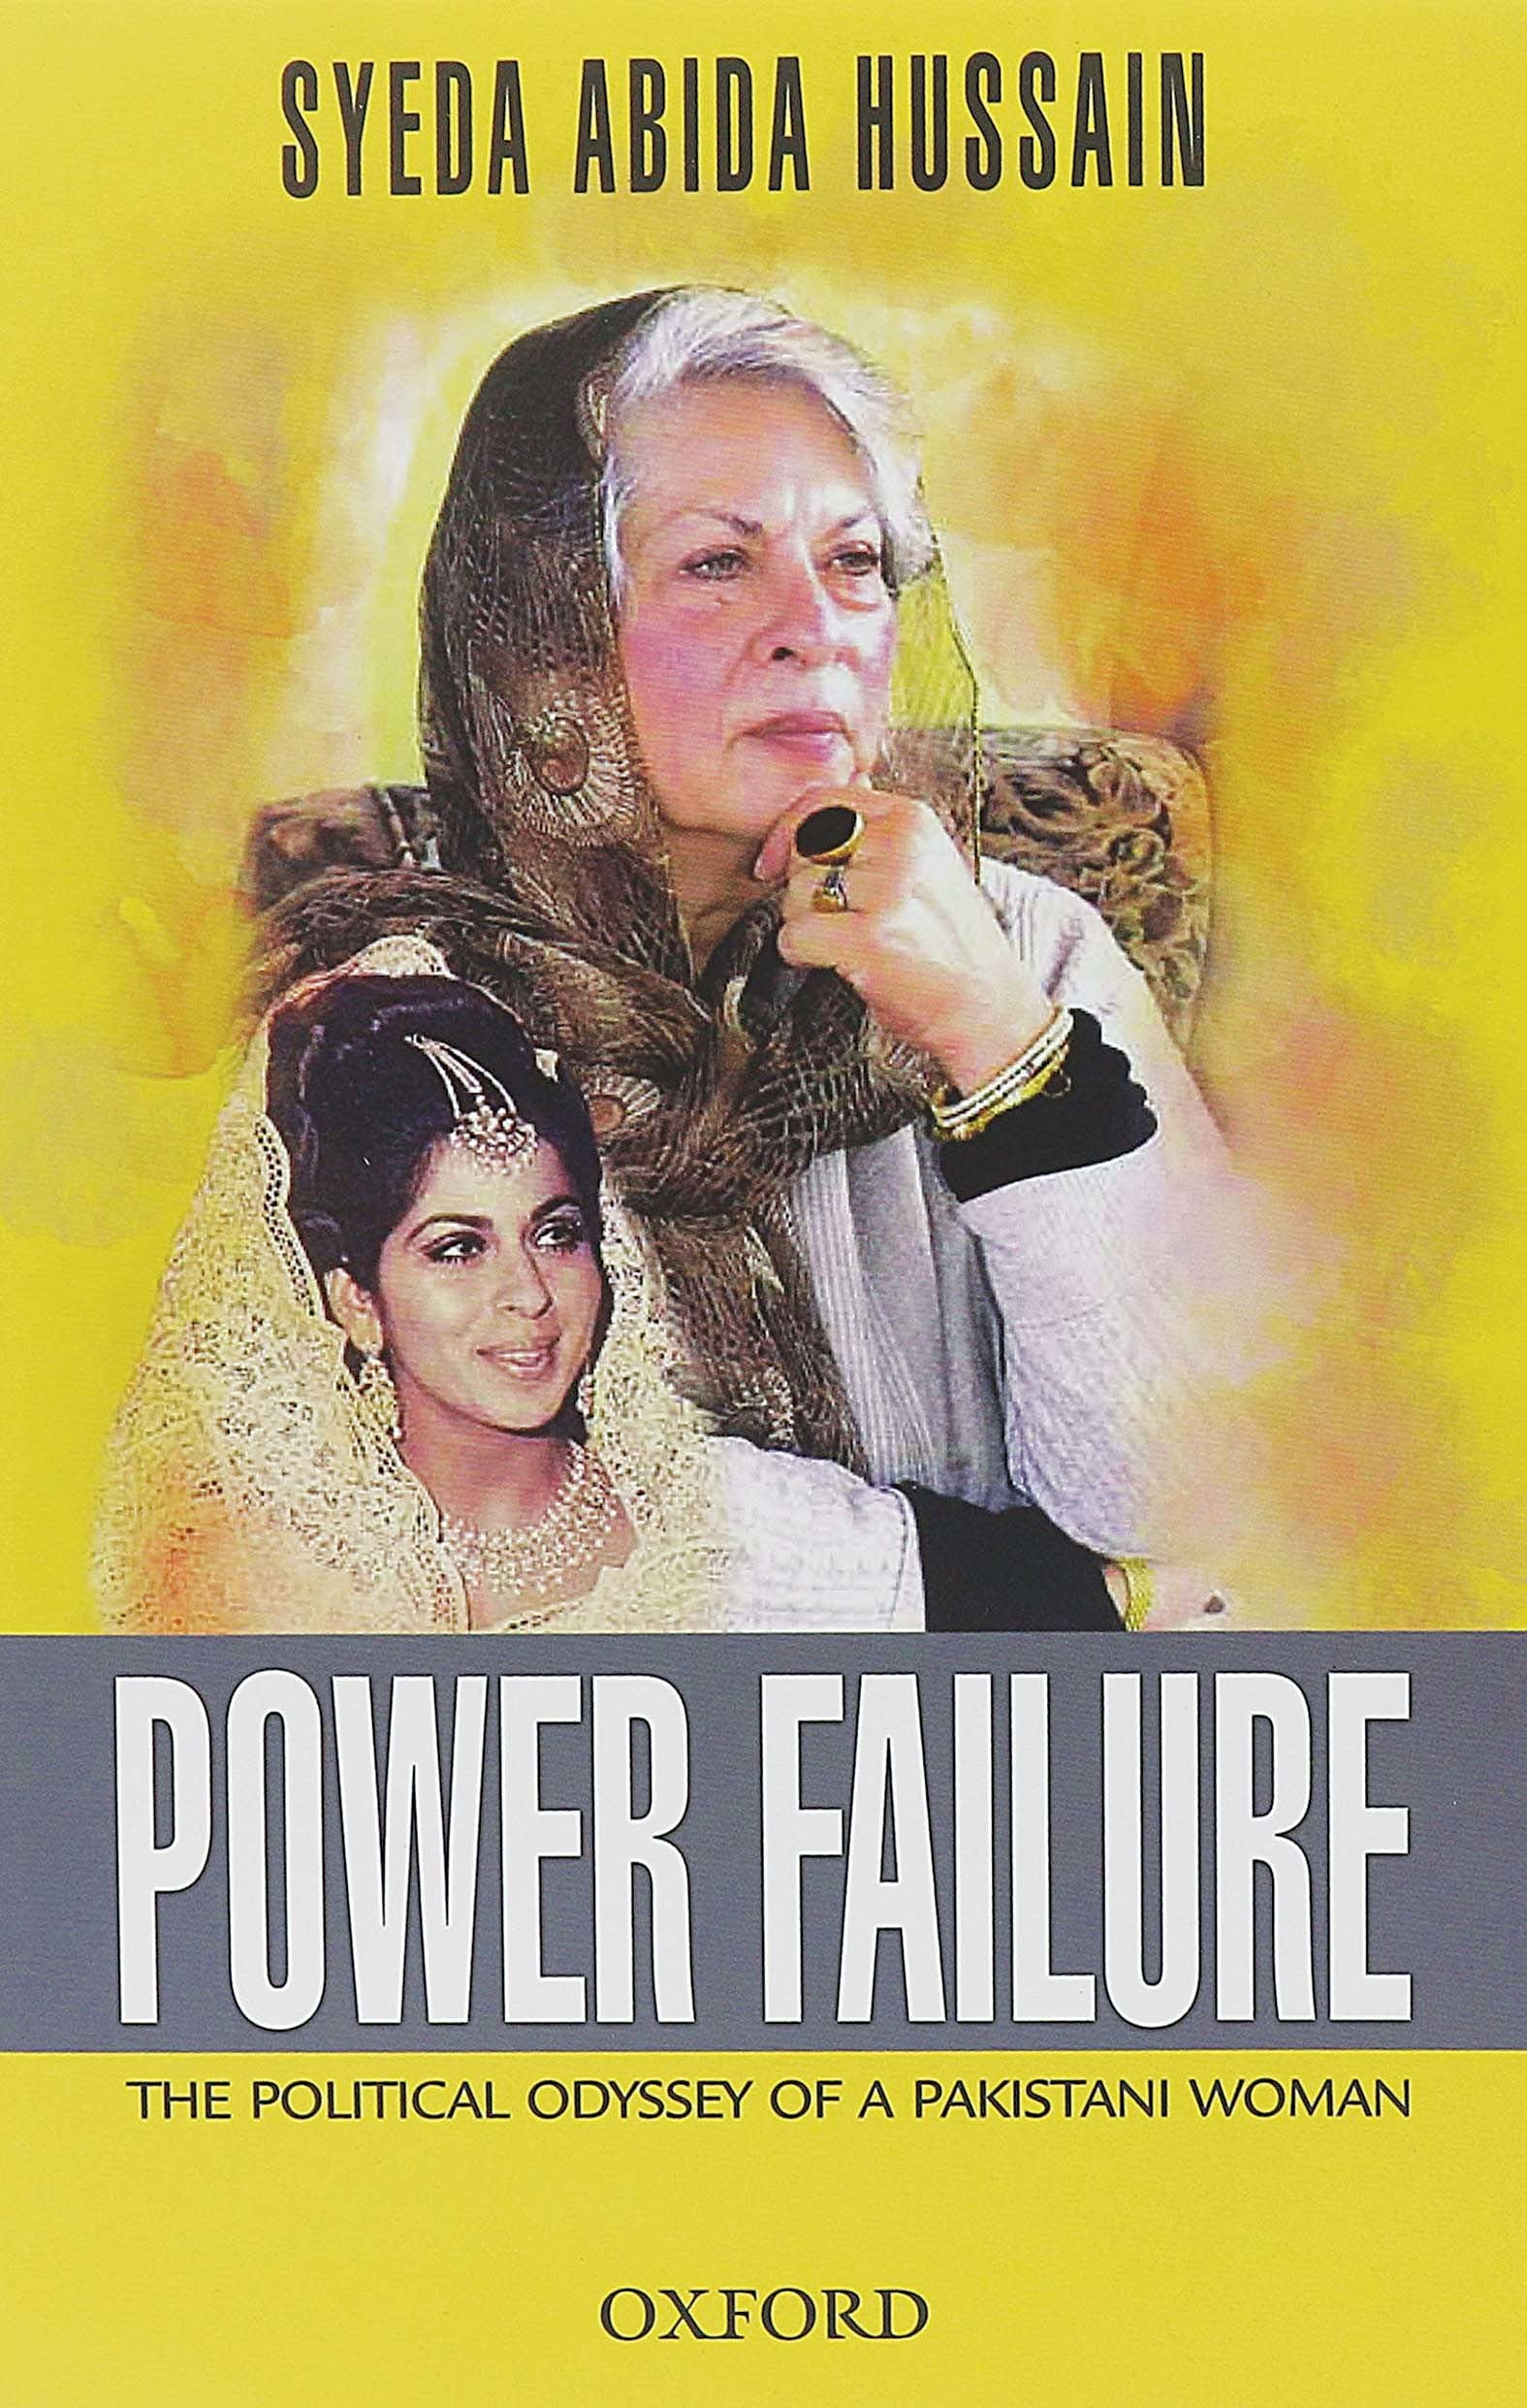 Power Failure: The Political Odyssey of a Pakistani Woman  By Syeda Abida Hussain